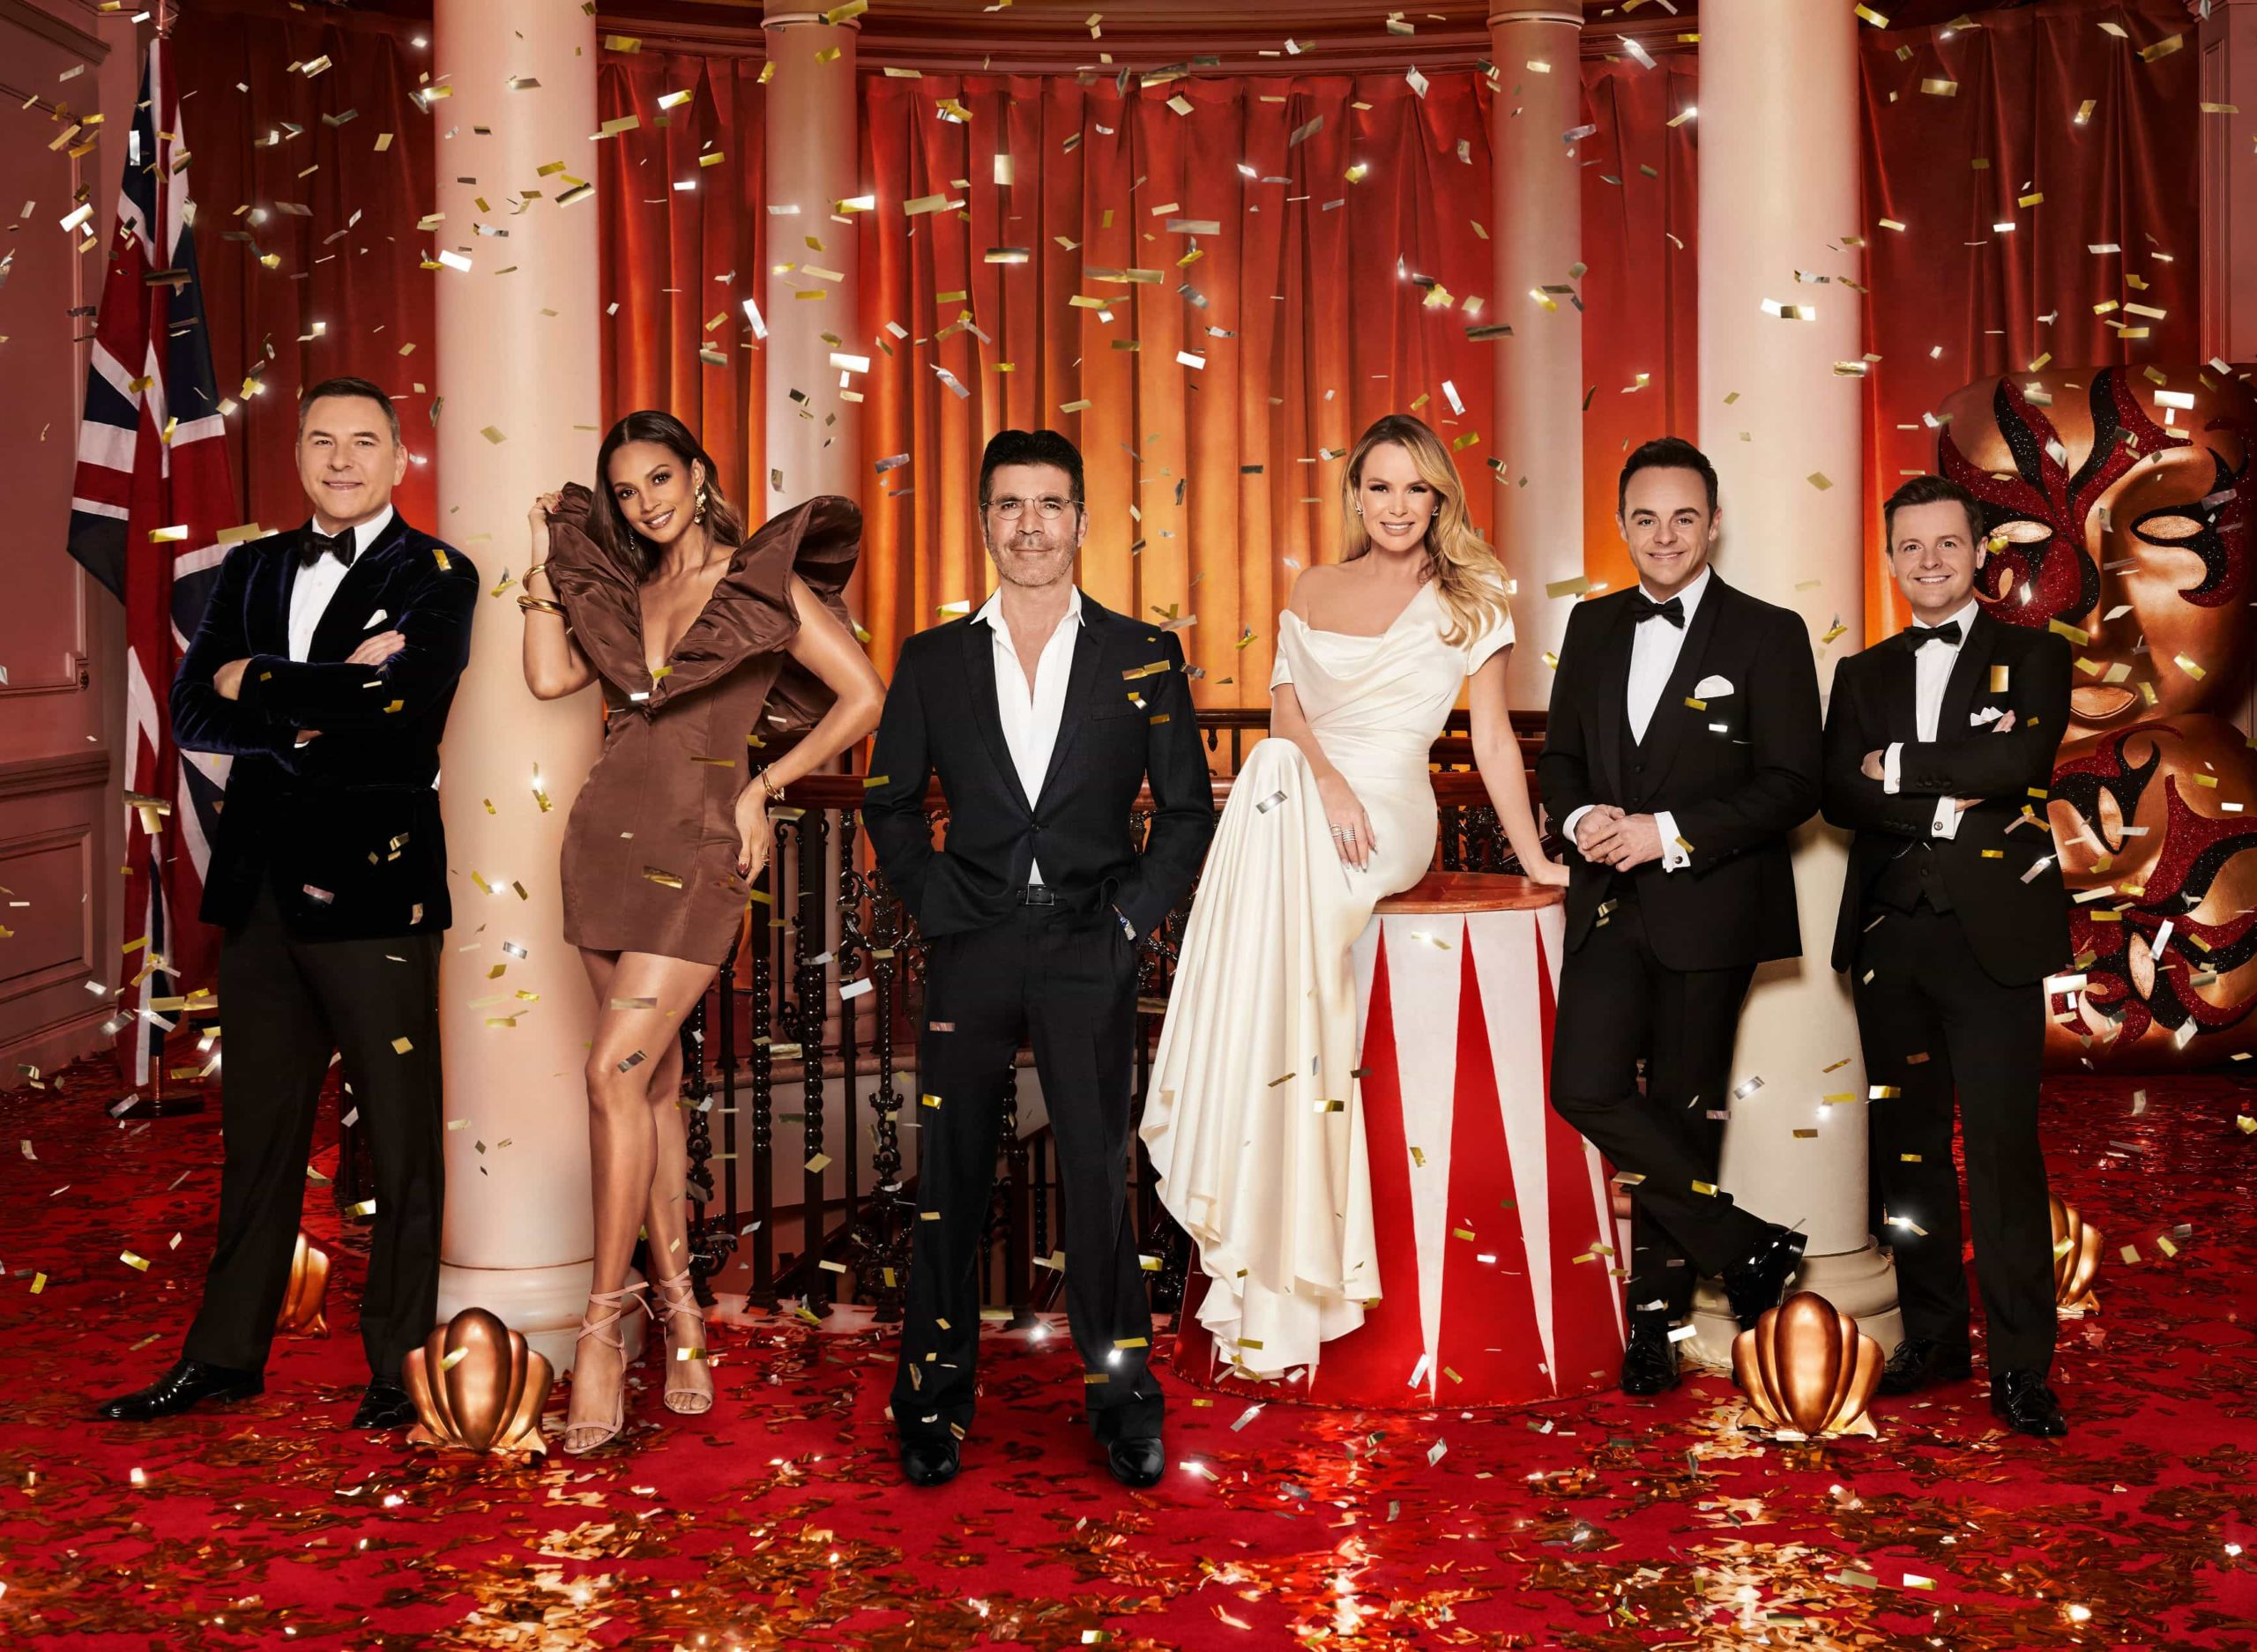 Britain's Got Talent judges get glam for new photoshoot as new season starts this weekend